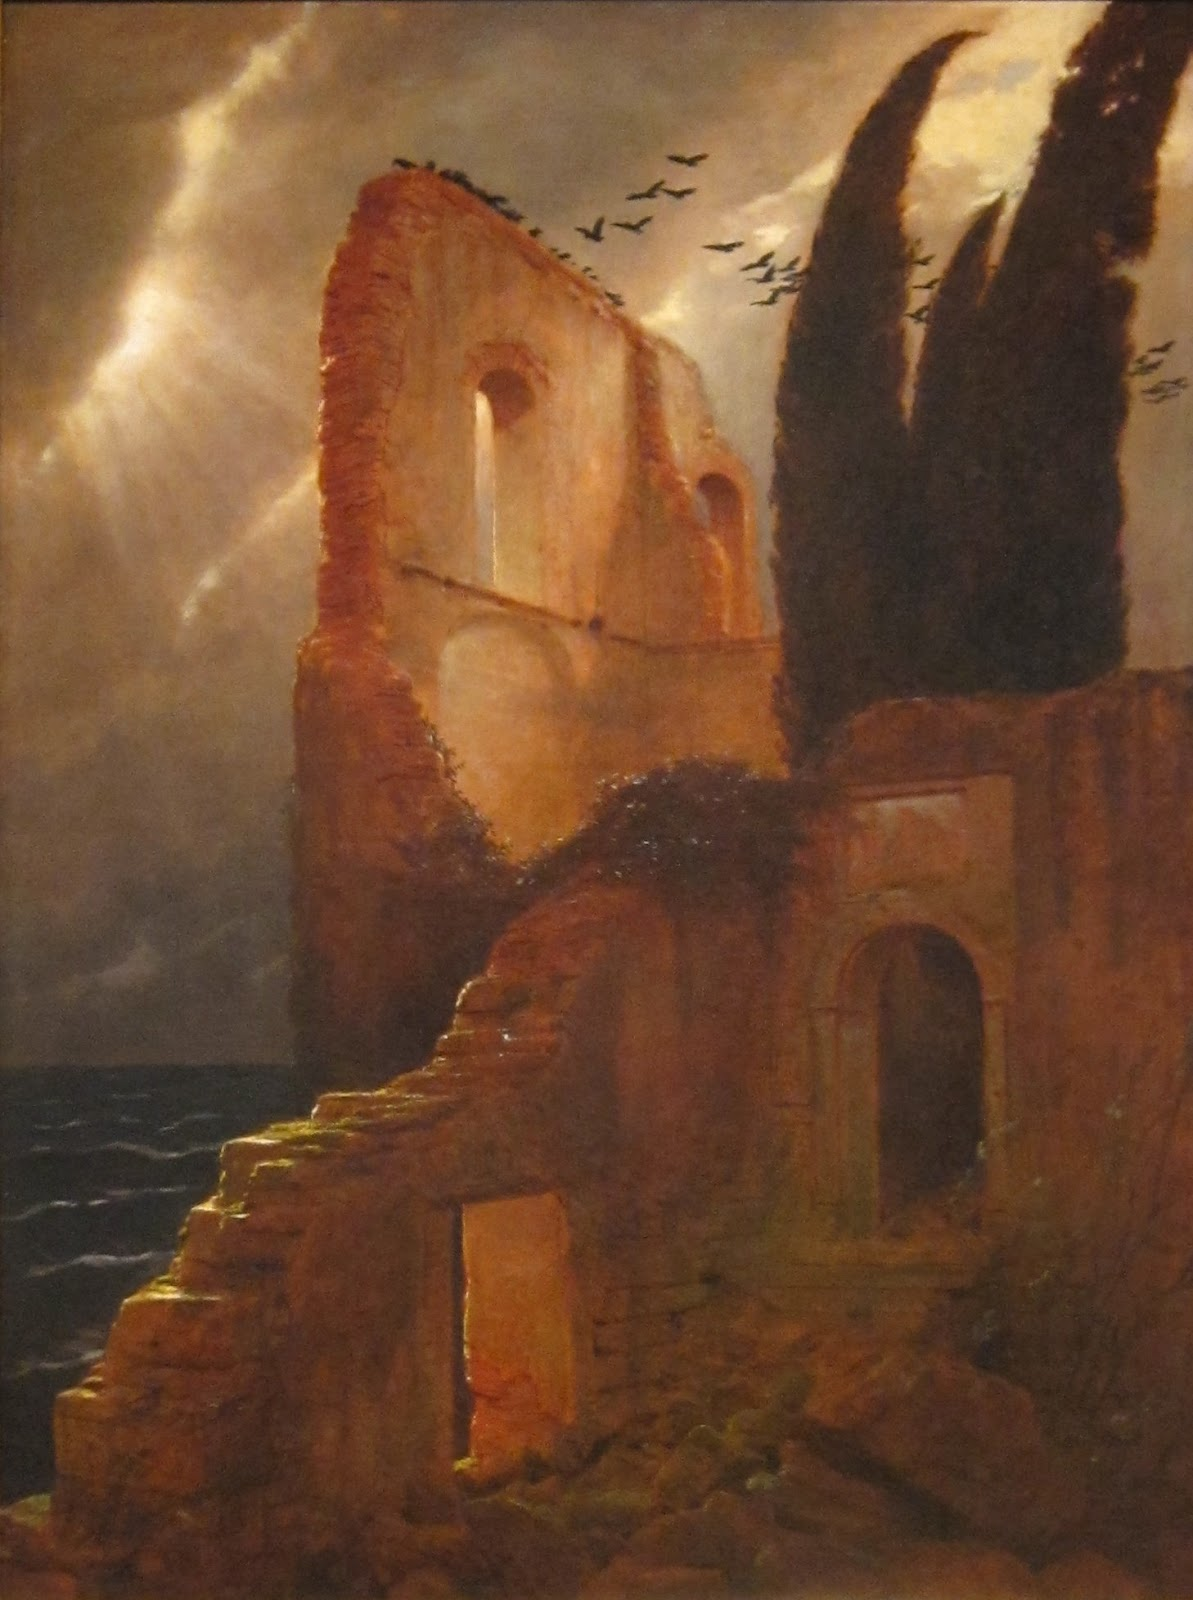 Arnold    C  cklin  Ruin  by  the  sea C